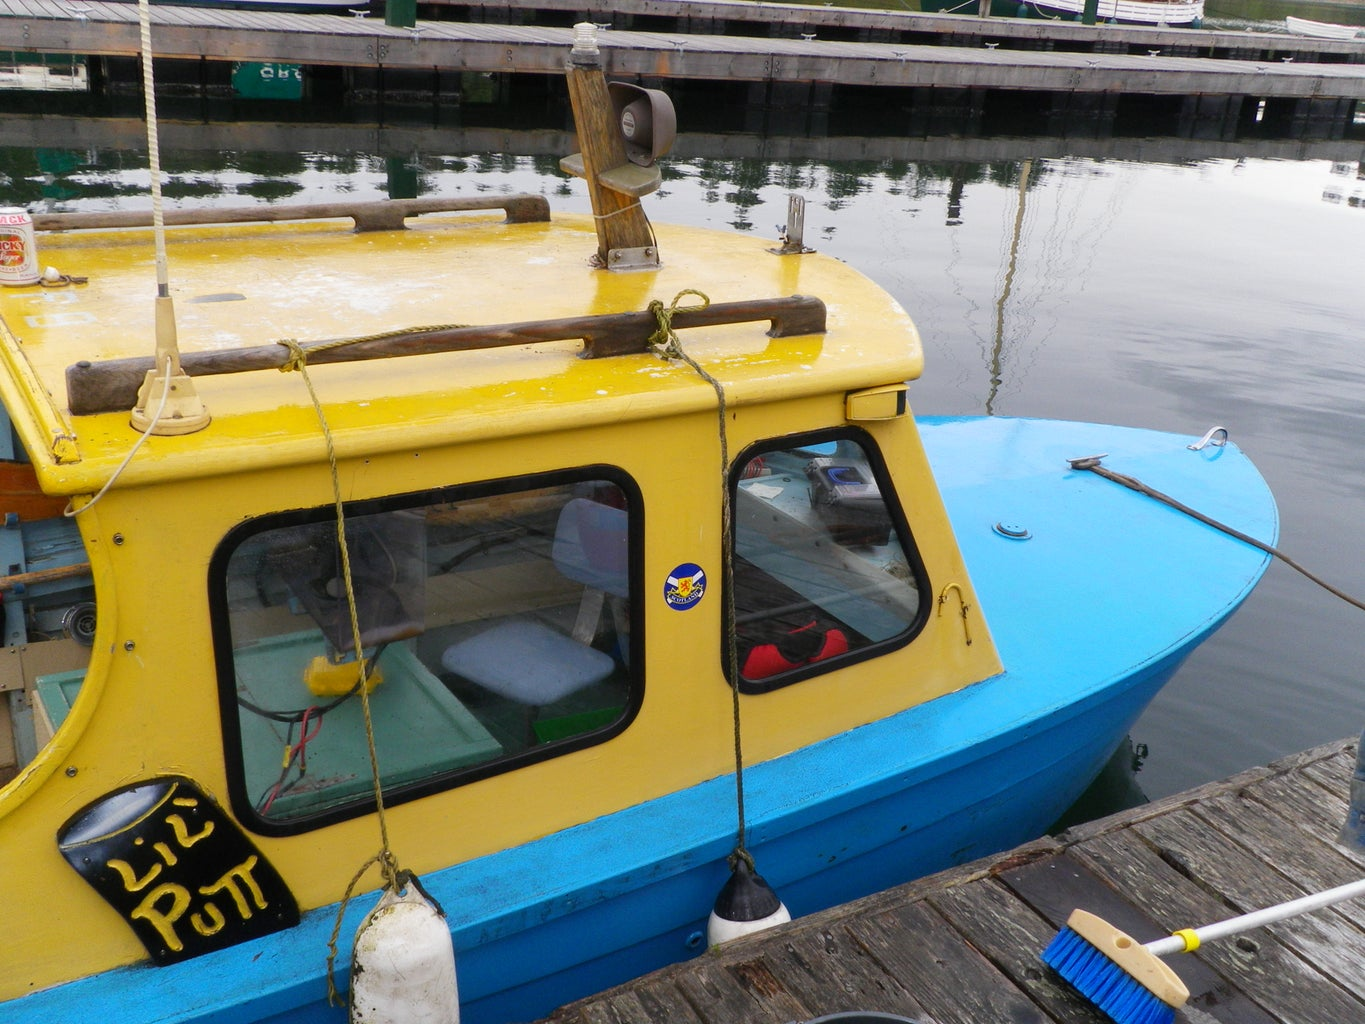 Buying a Boat Online: Adventures of Lil Putt Restoration